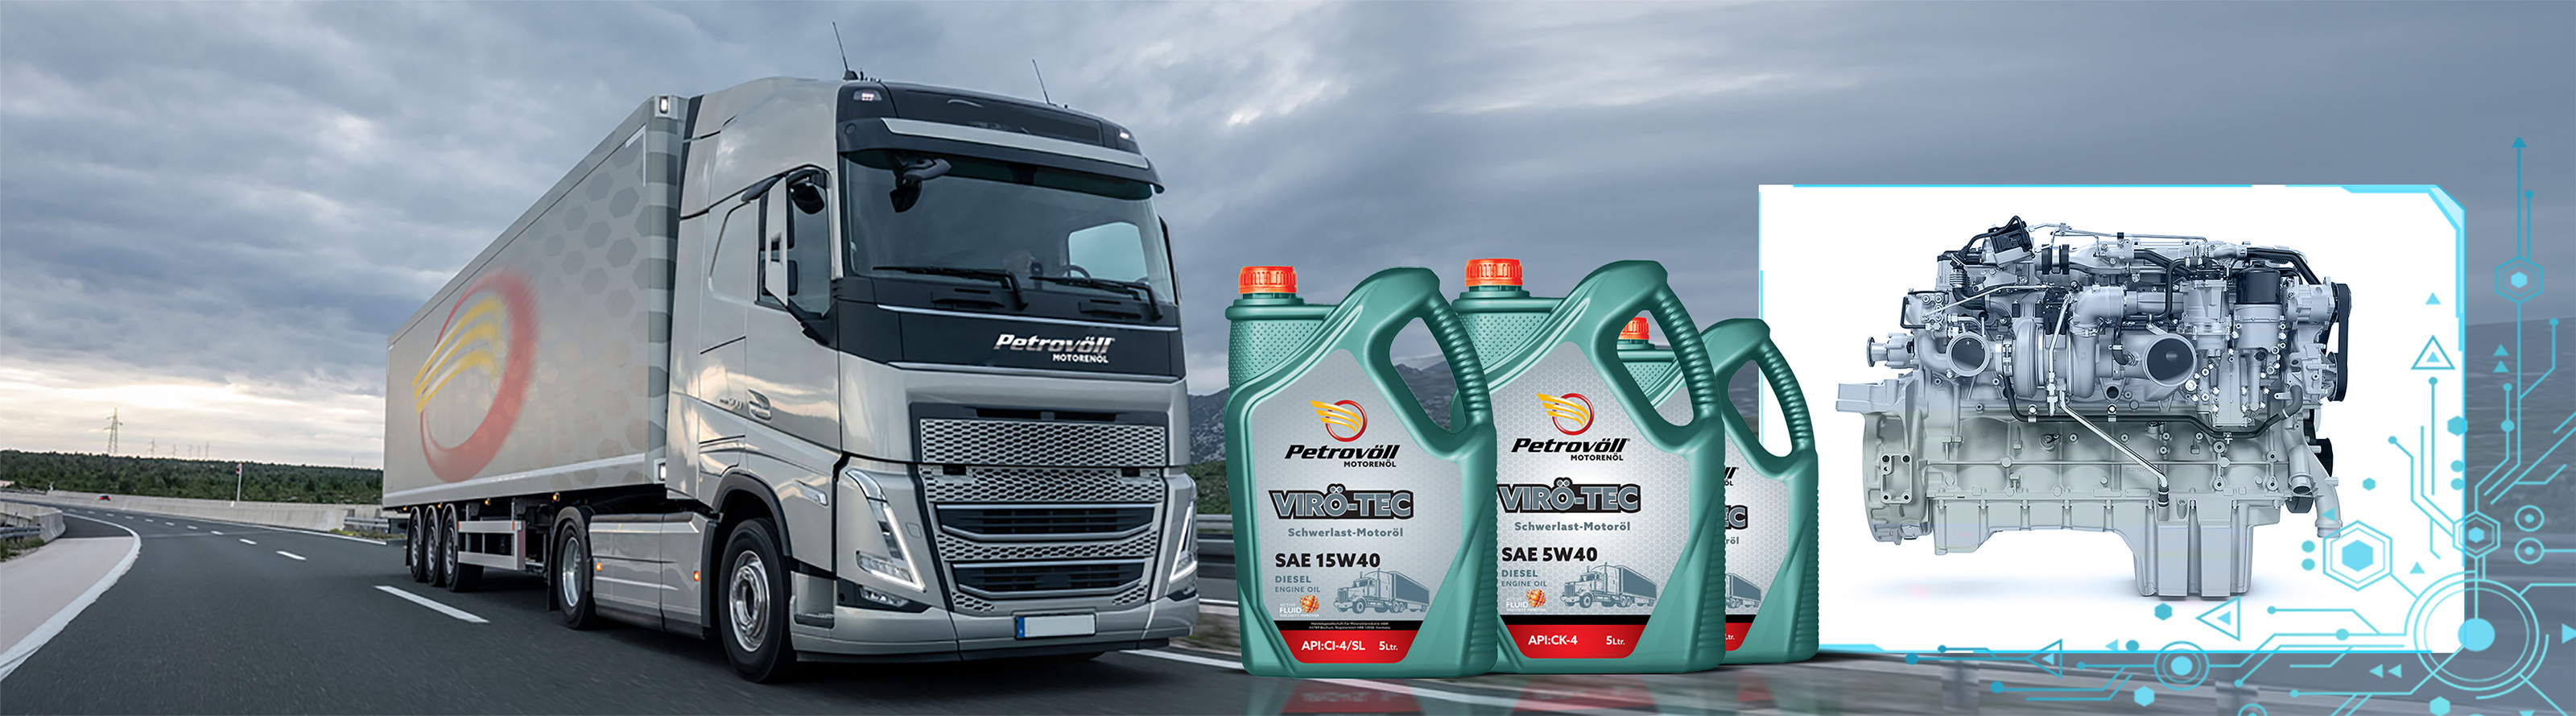 Petrovoll Diesel Engine Oils